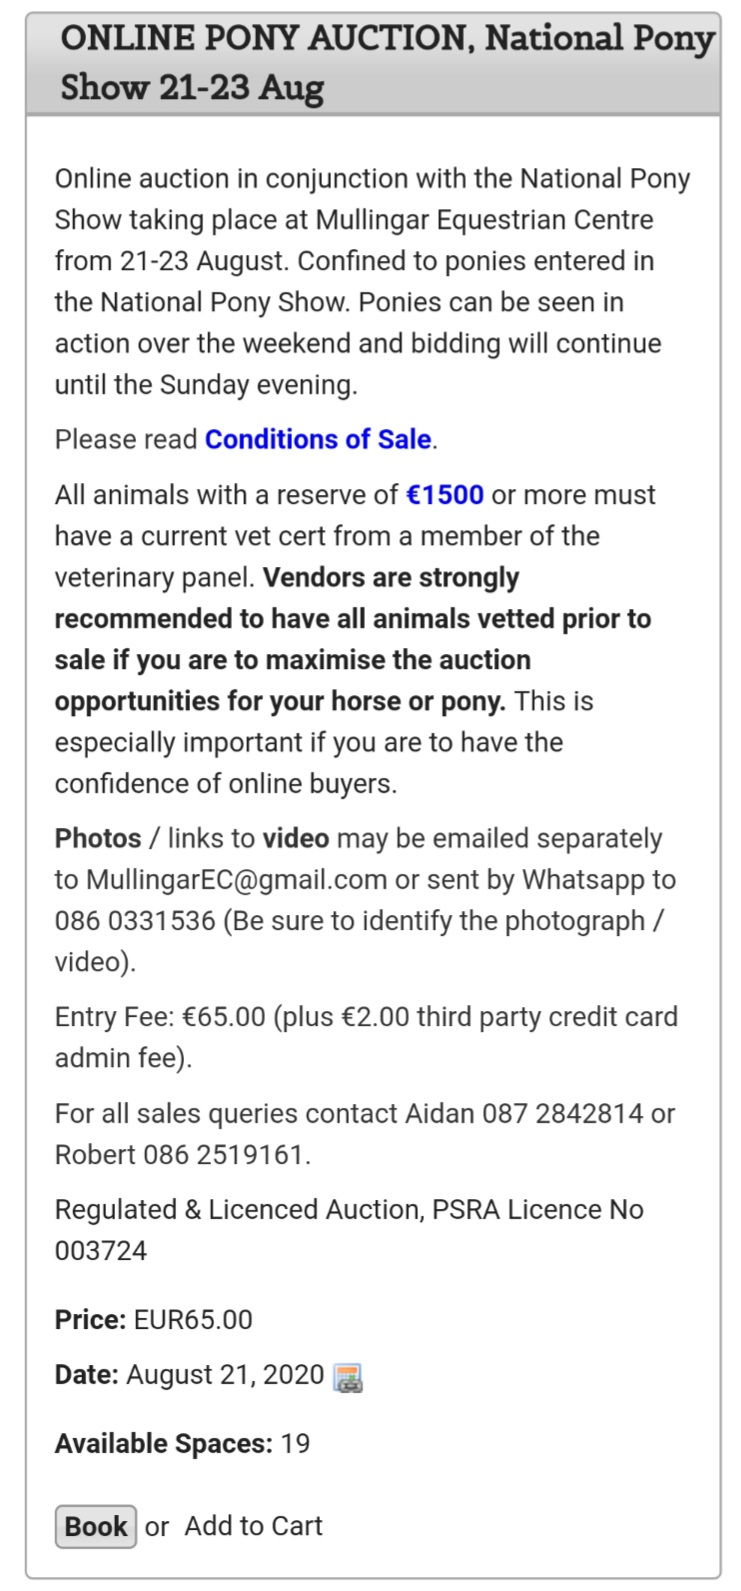 ONLINE PONY AUCTION – National Pony Show 21st to 23rd August